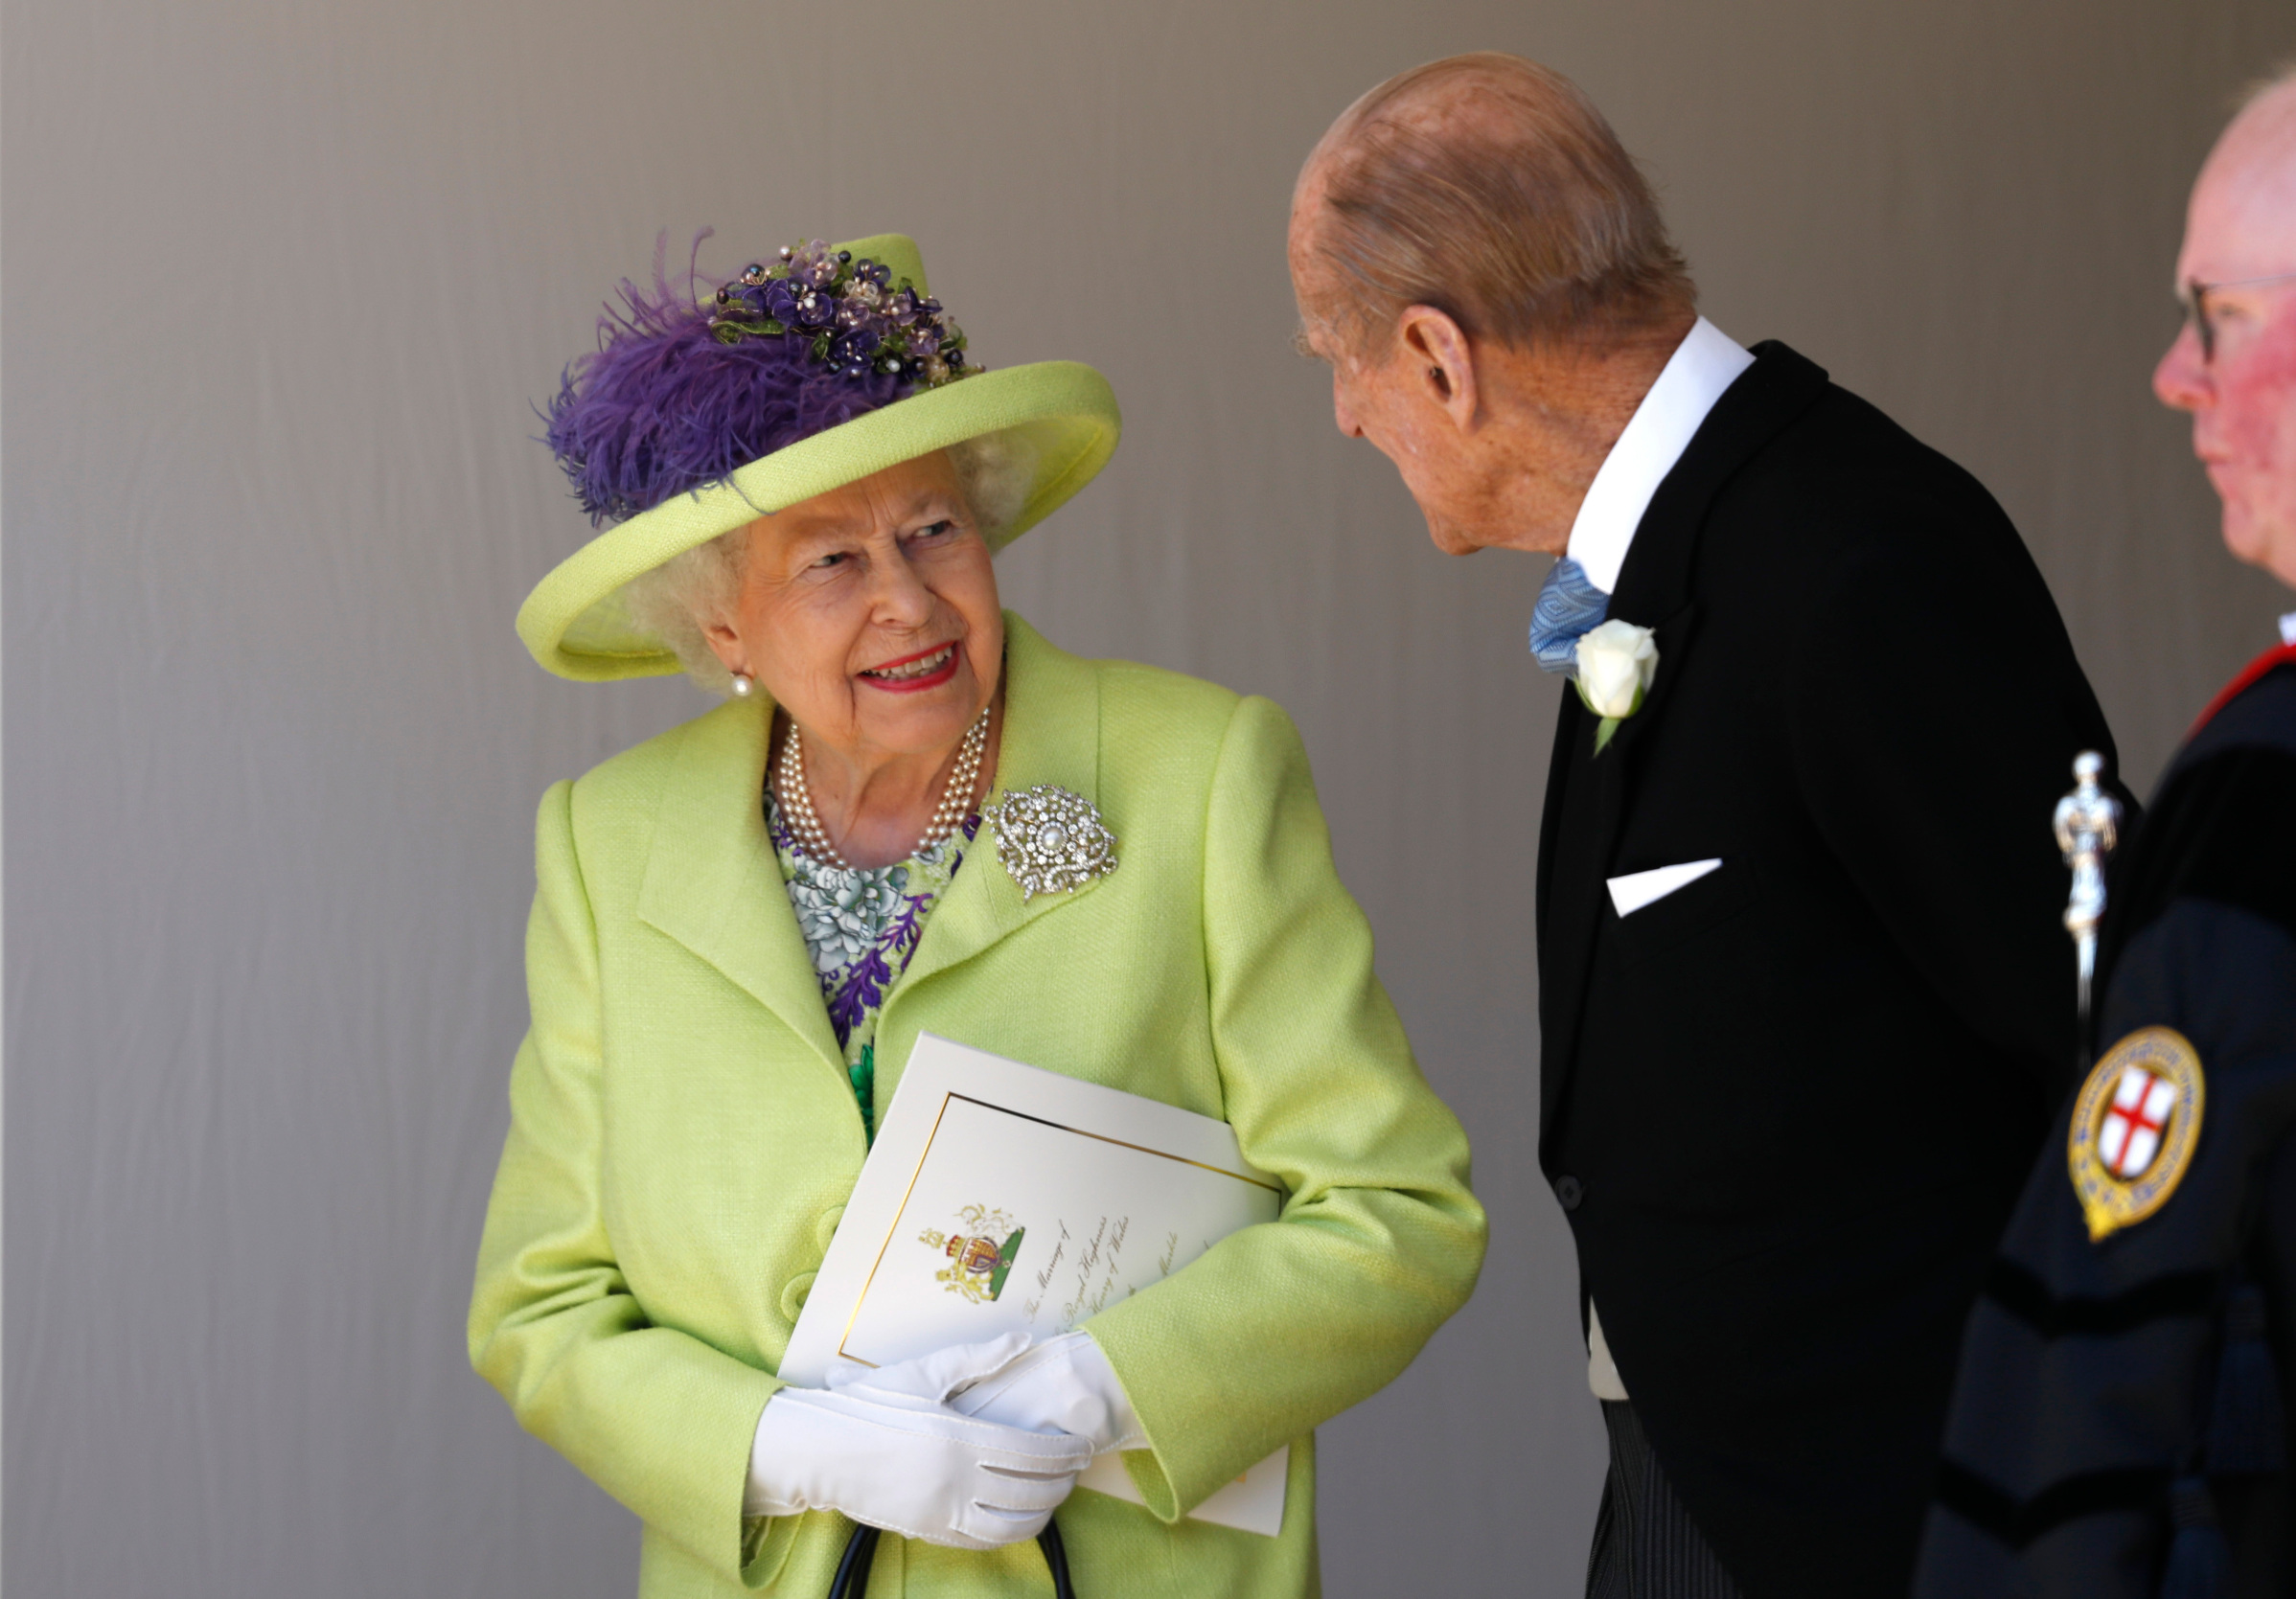 WINDSOR, UNITED KINGDOM - MAY 19:  Queen Elizabeth II talks with Prince Philip, Duke of Edinburgh after the wedding of Prince Harry and Meghan Markle at St George's Chapel at Windsor Castle on May 19, 2018 in Windsor, England. (Photo by Alastair Grant - WPA Pool/Getty Images)